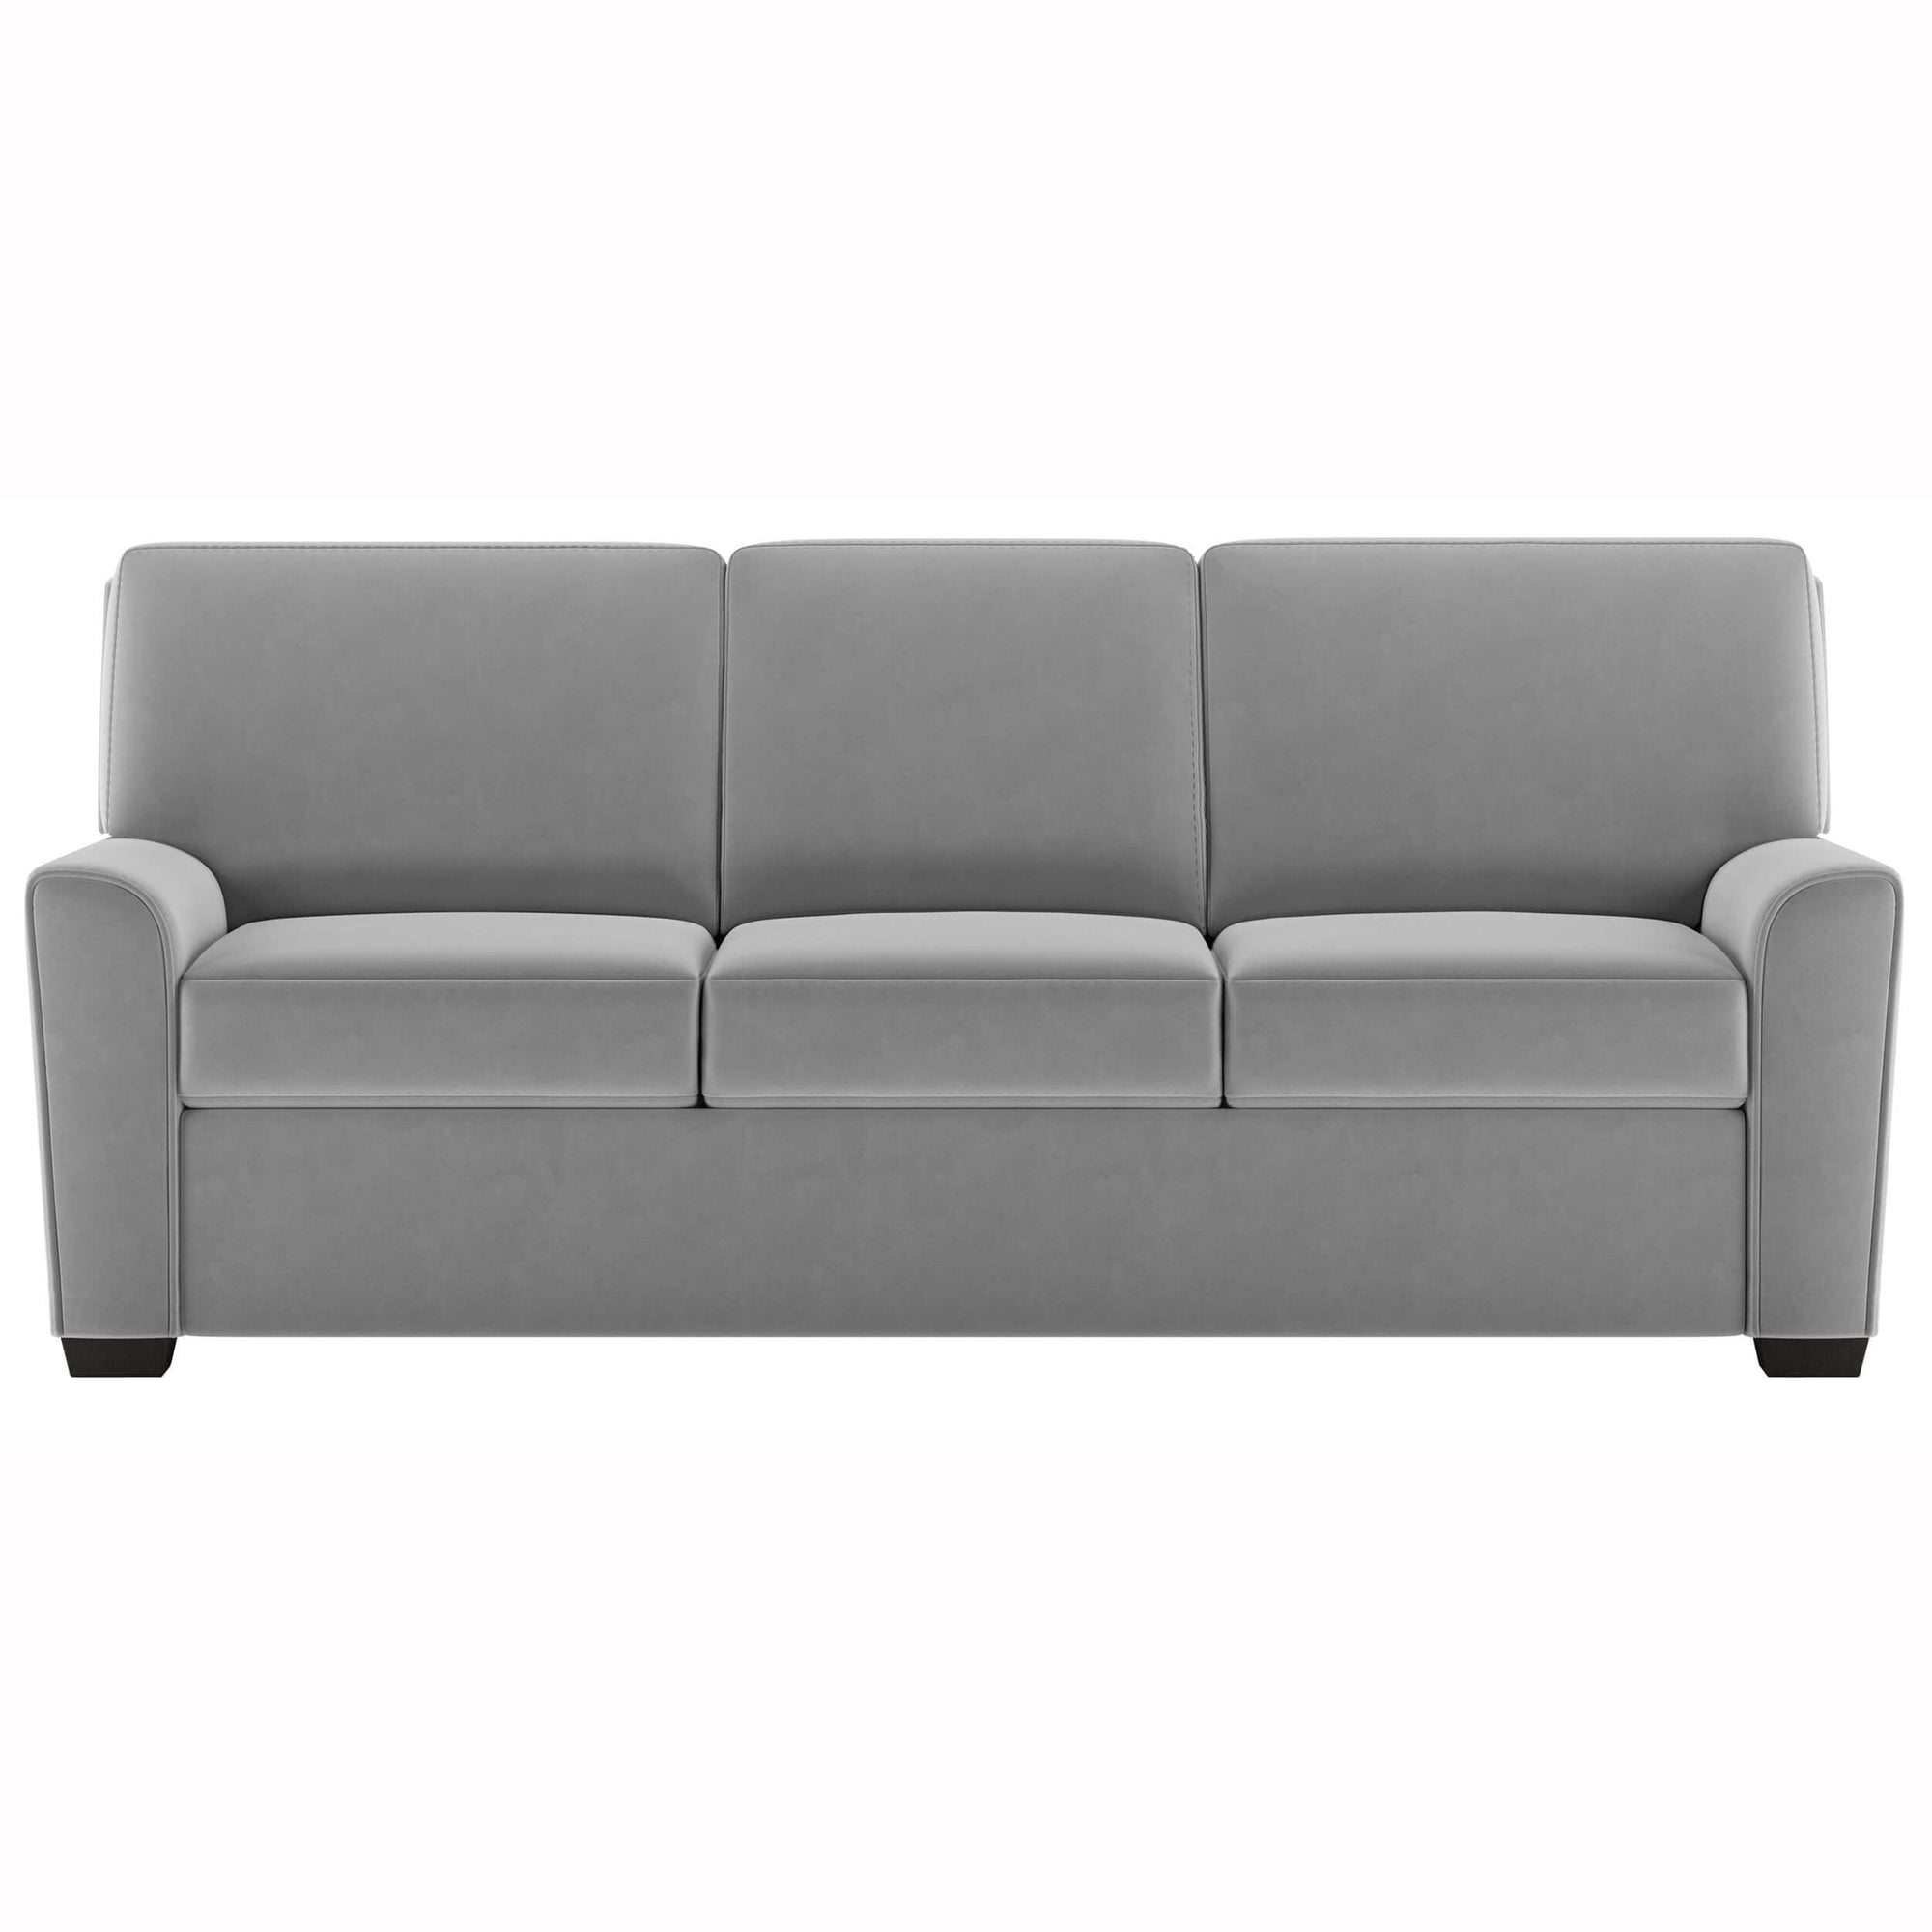 Picture of: American Leather Klein Queen Sleeper Sofa Toray Ultrasuede French Gra High Fashion Home